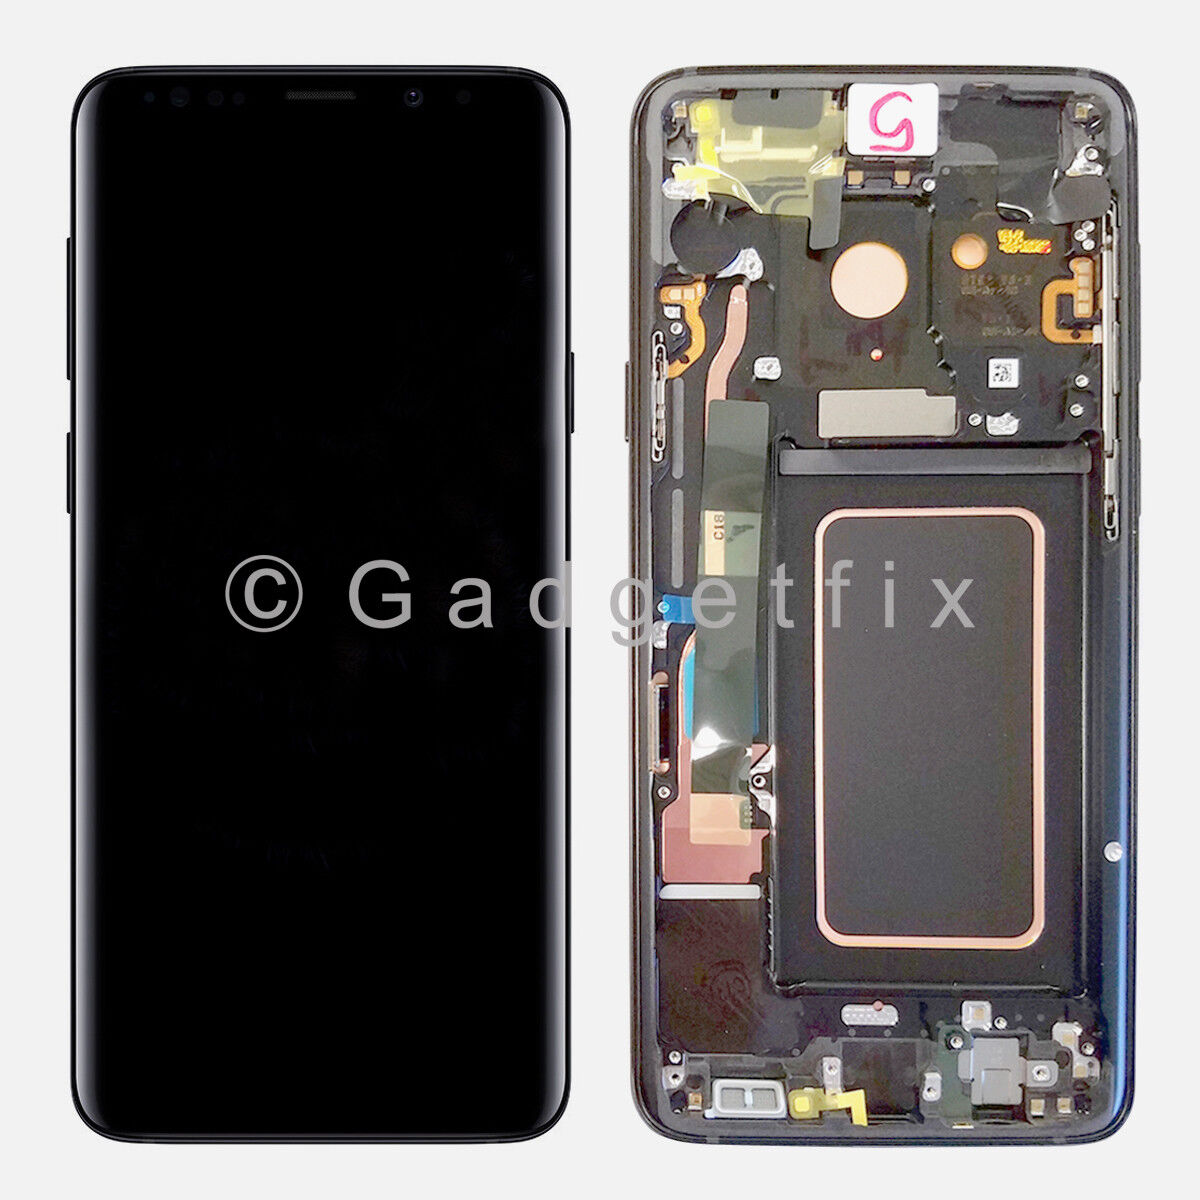 Samsung Galaxy S6 S7 Edge S8 S9 Plus LCD Display Touch Screen Digitizer Assembly